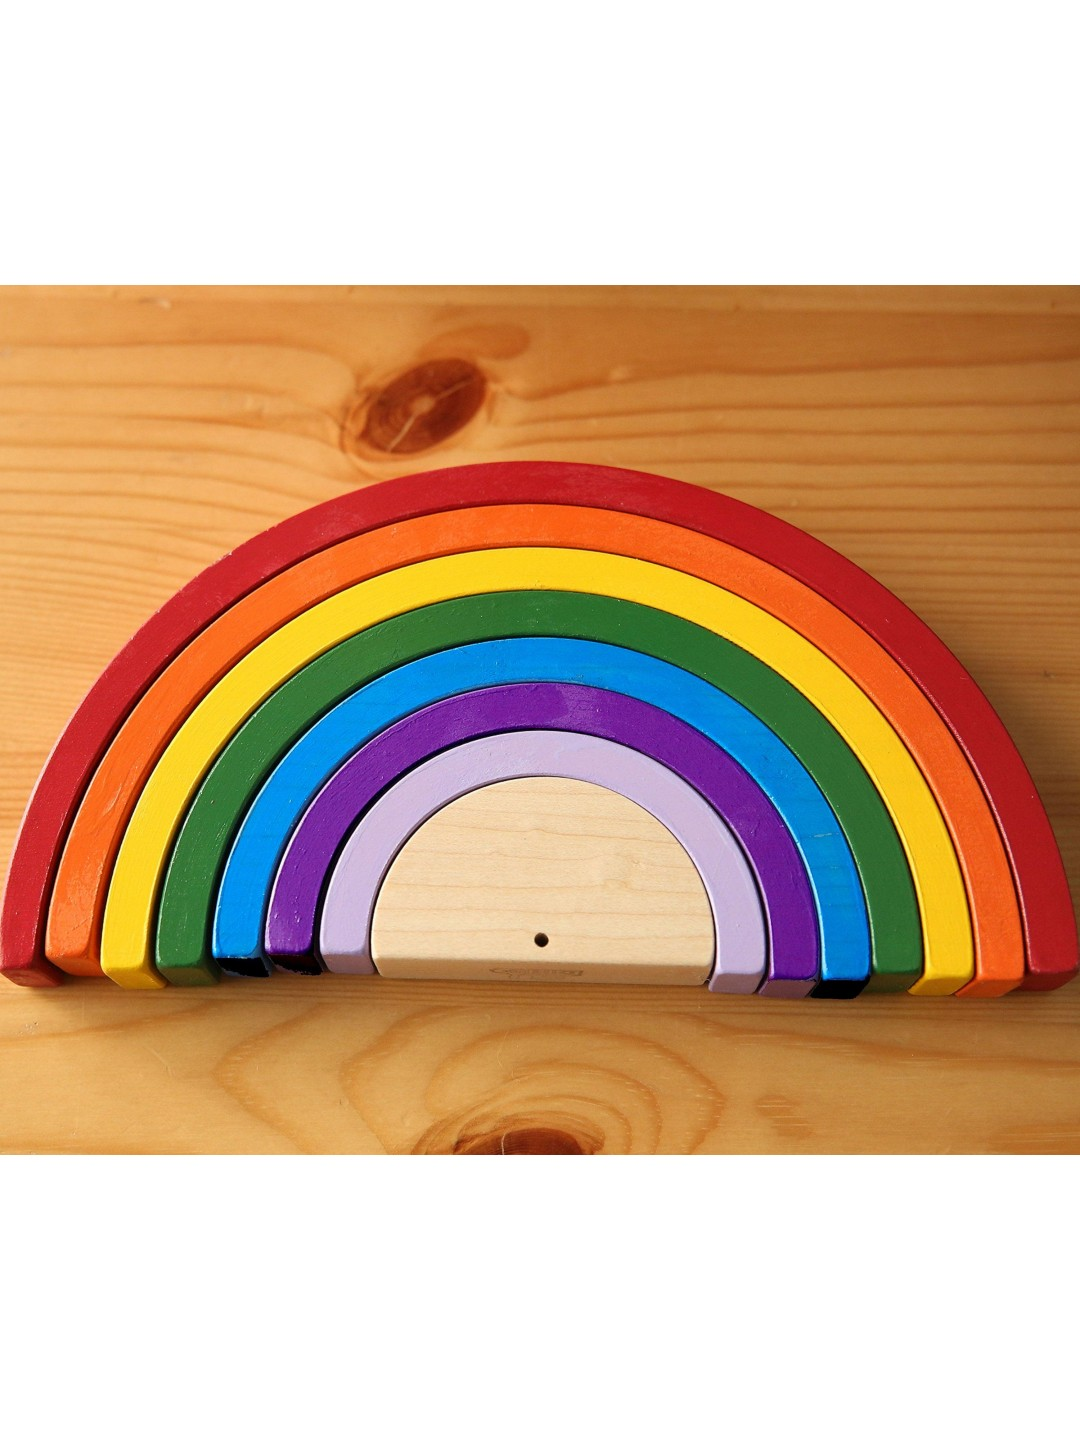 8.75 x 4.25 inch Wooden Rainbow Stacker Montessori Toy, Montessori Rainbow, Montessori Toys, Wooden Toys New Baby Gift, Made in Canada